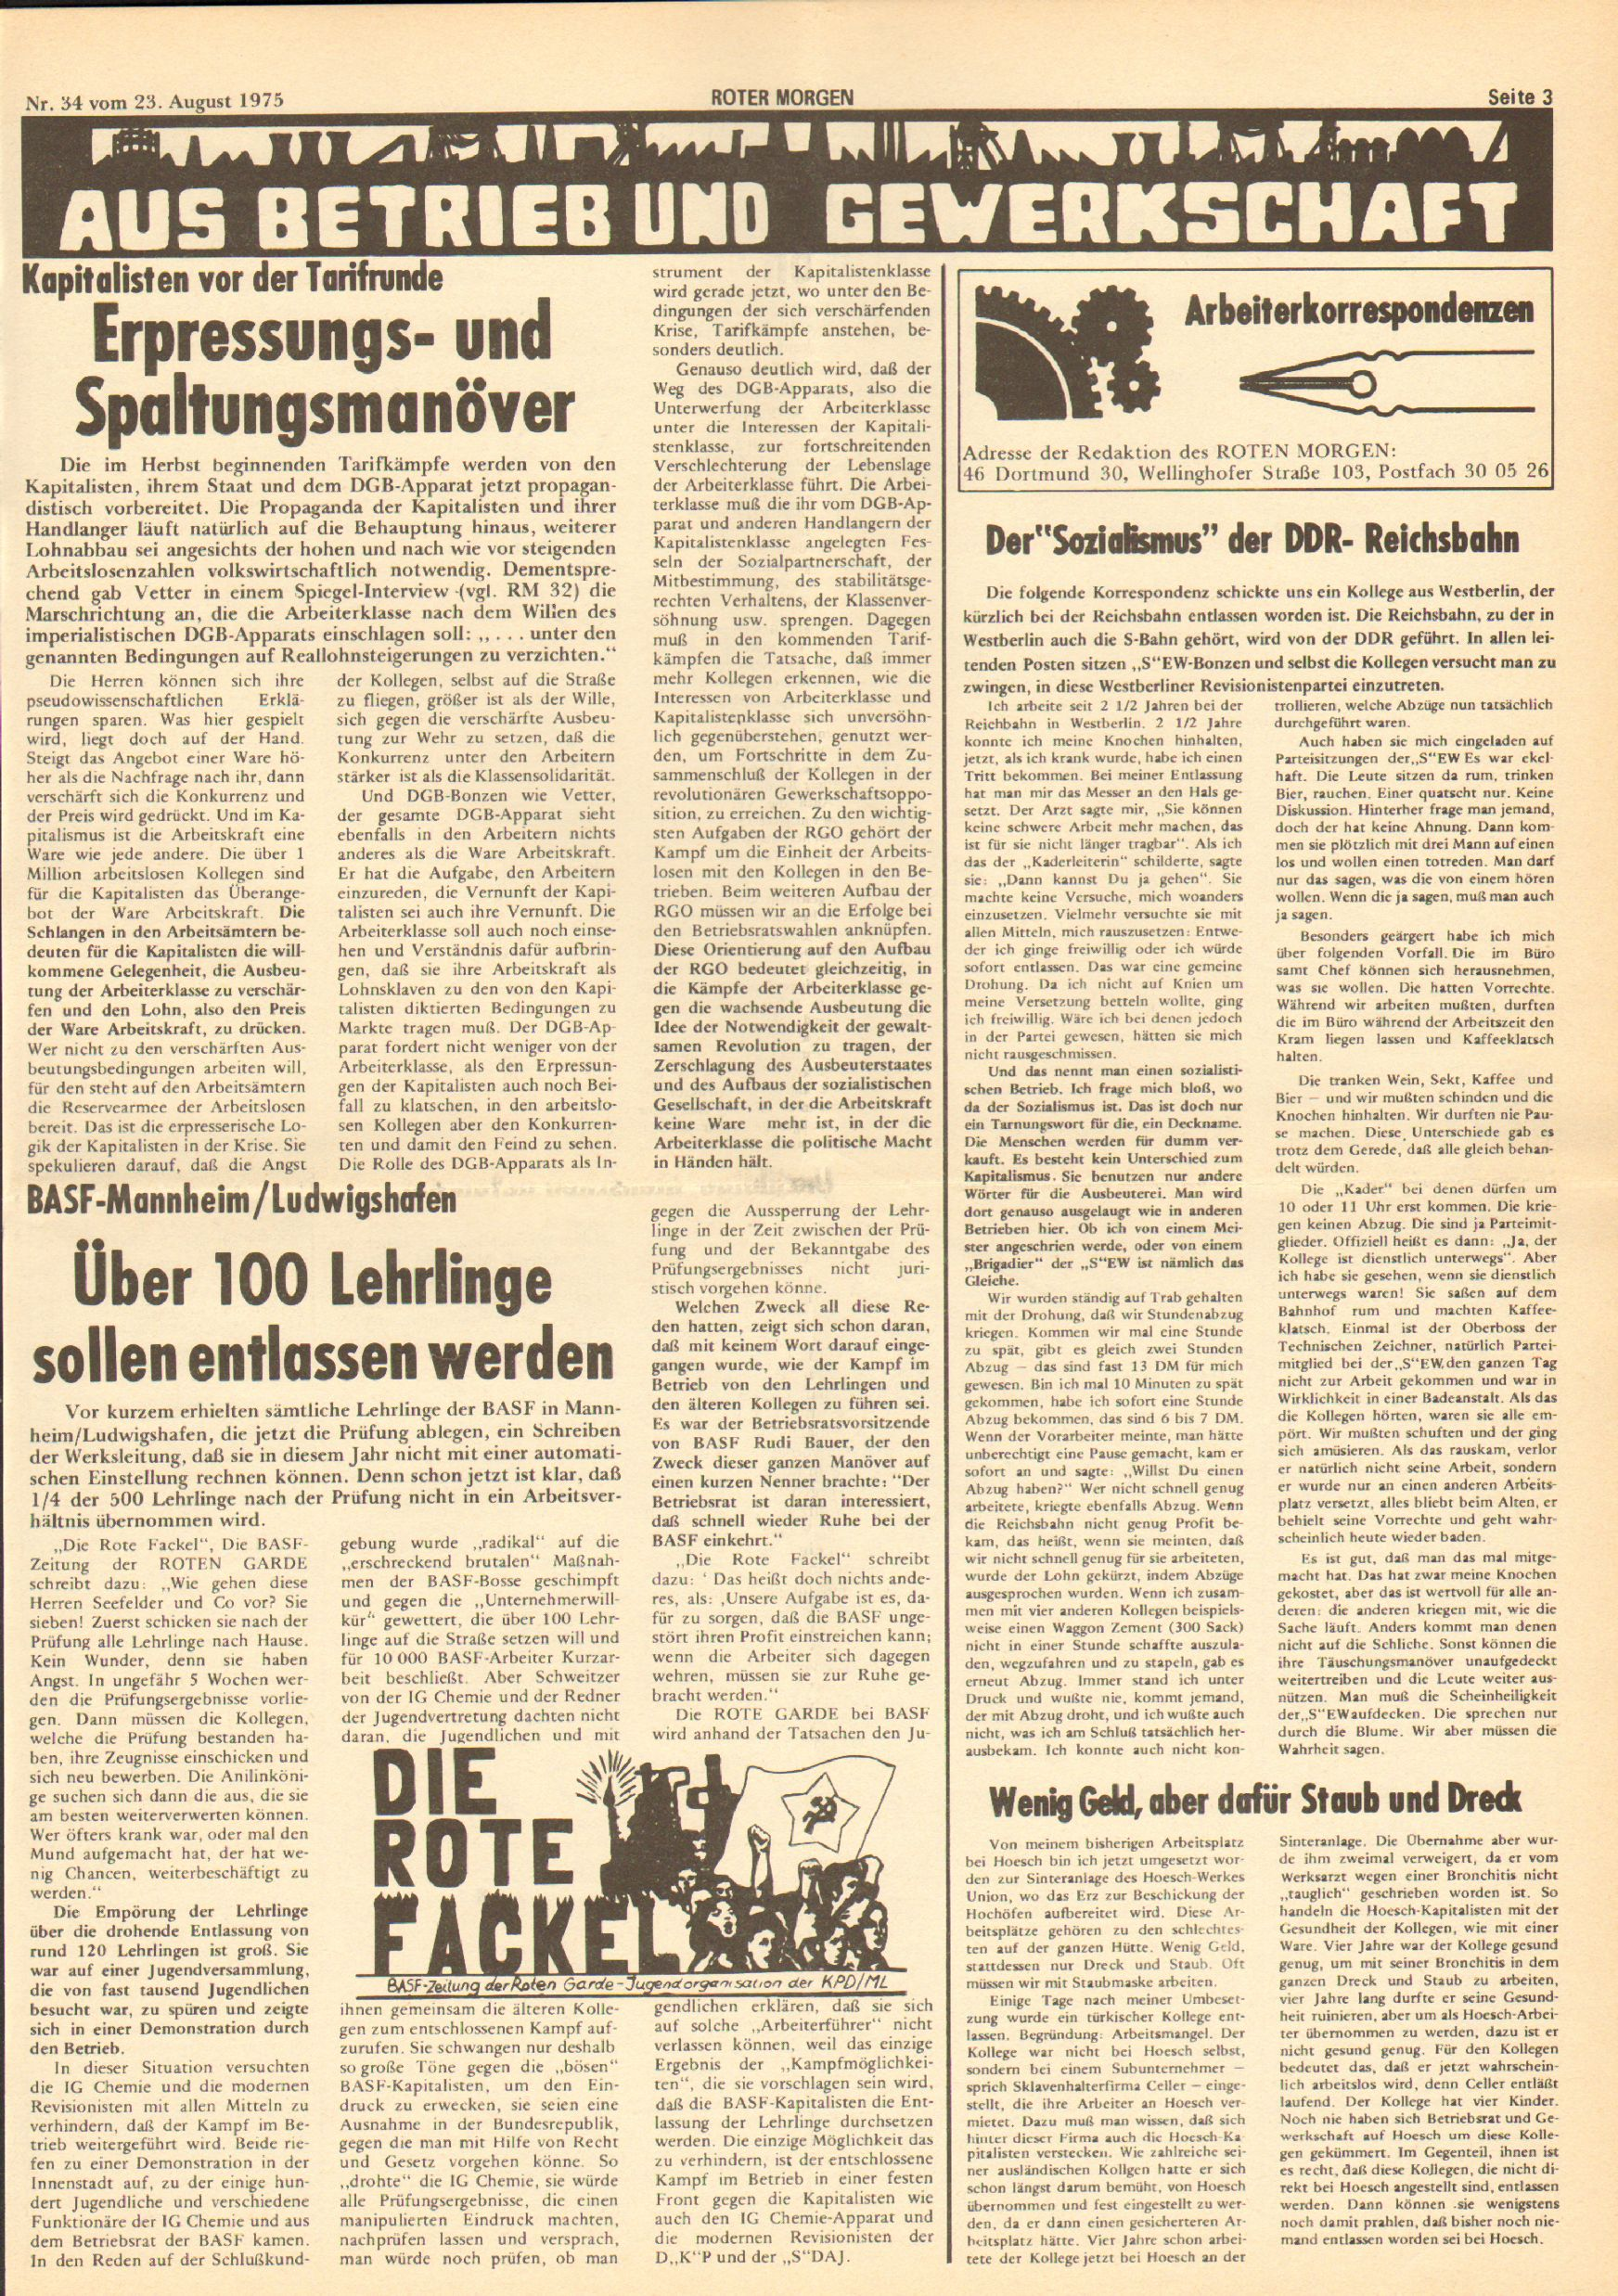 Roter Morgen, 9. Jg., 23. August 1975, Nr. 34, Seite 3